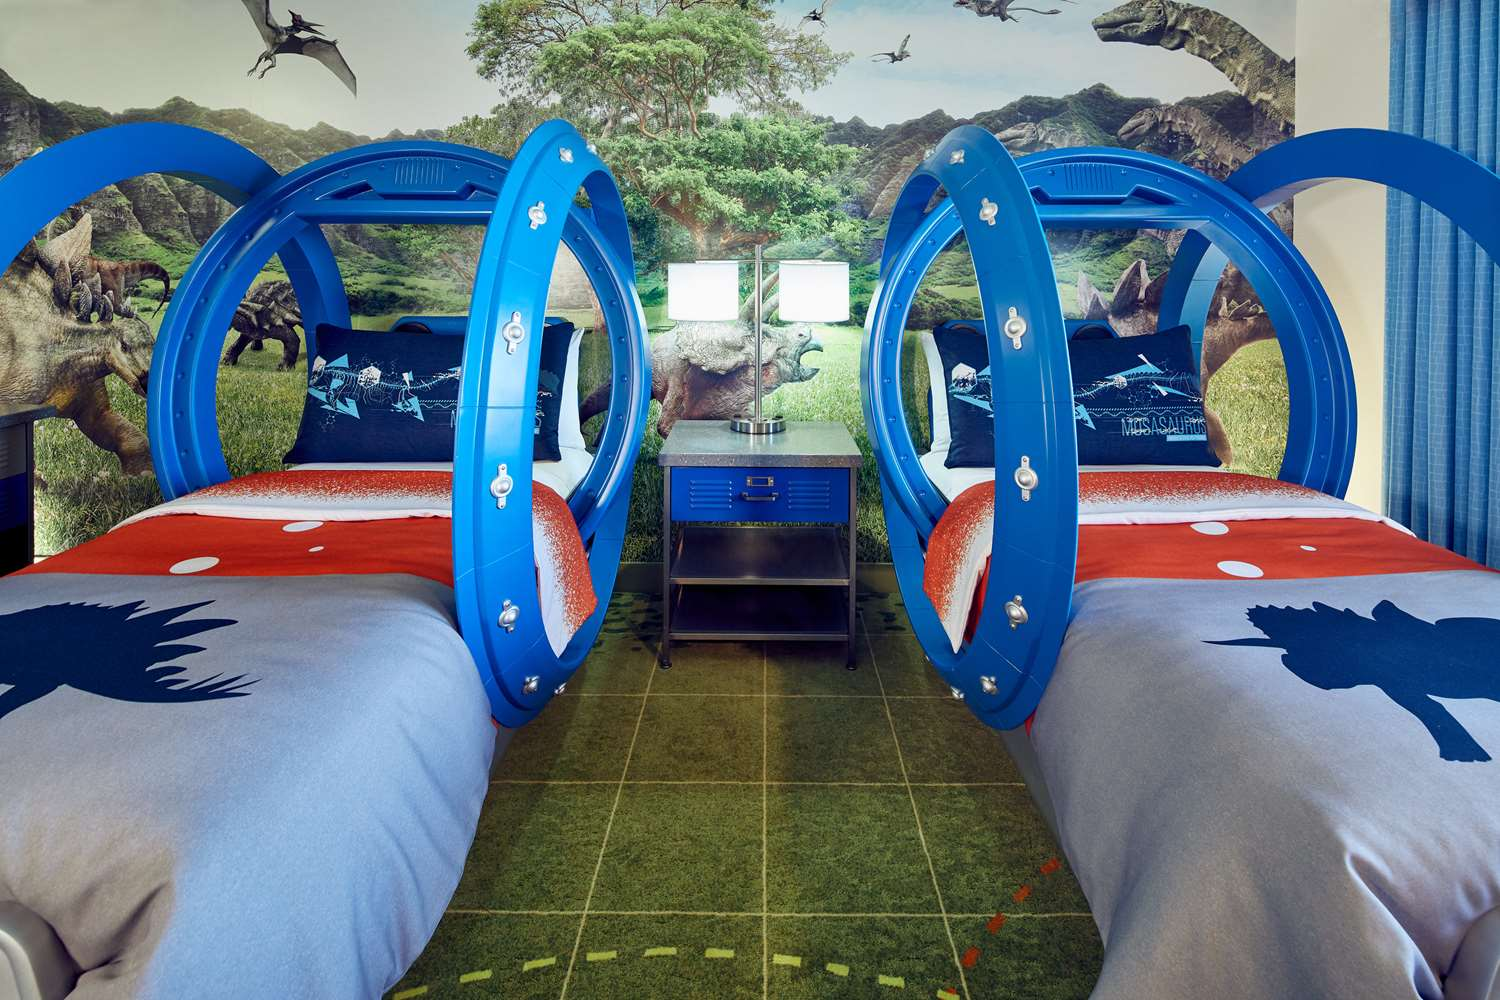 Jurassic World Kids' Suite